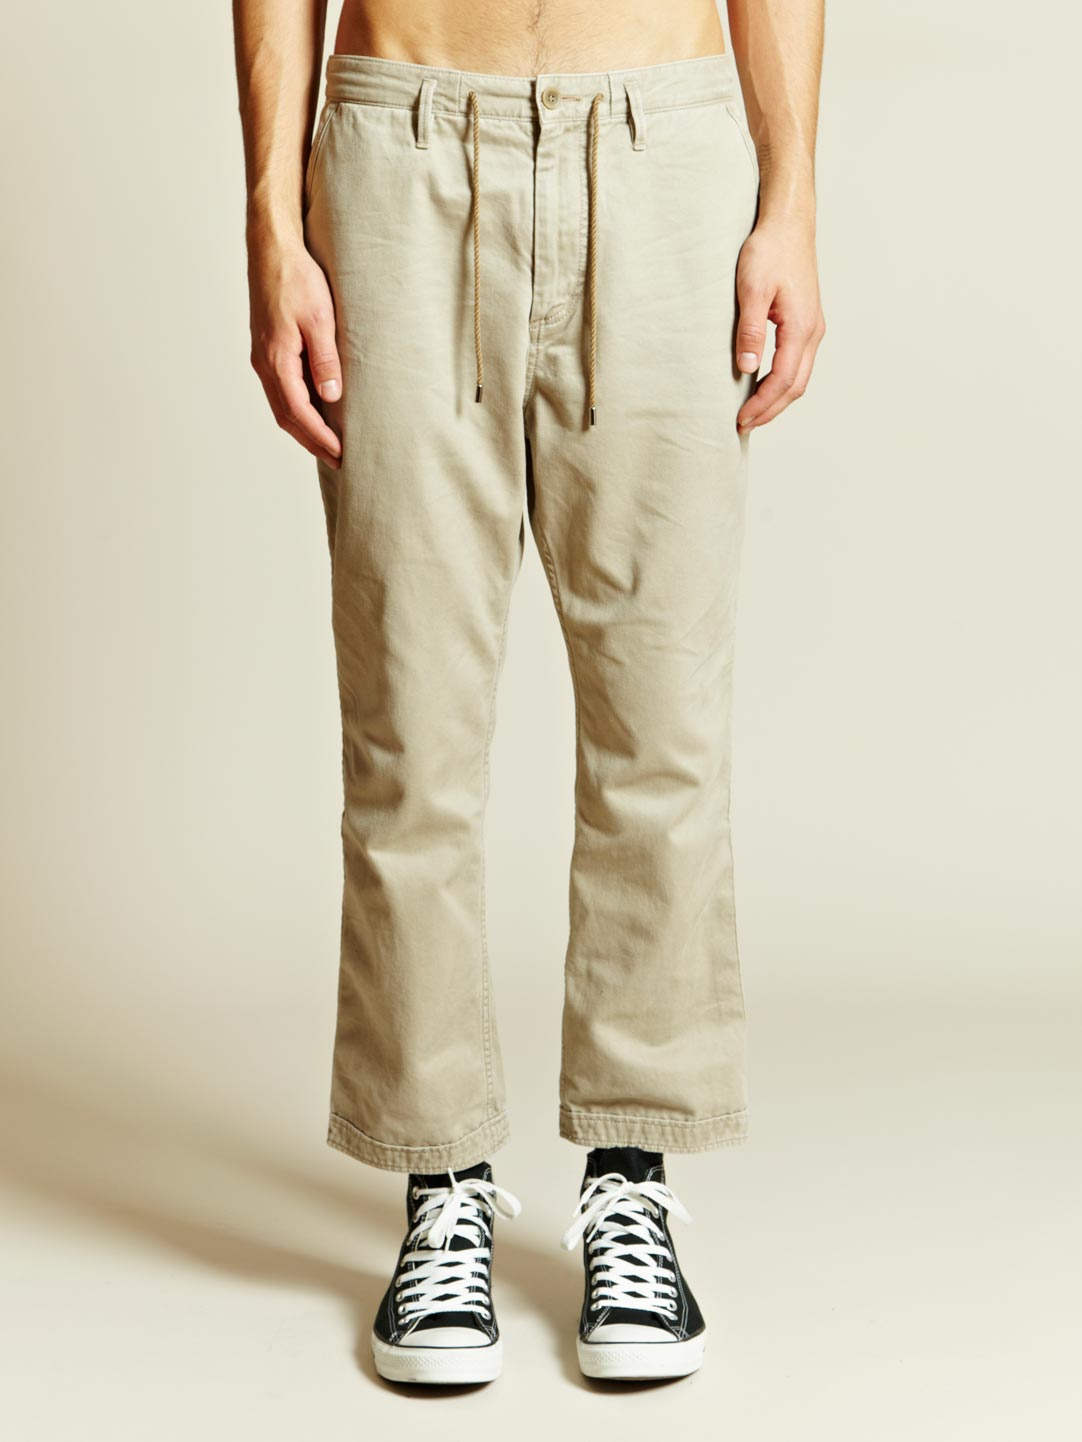 Nonnative Nonnative Mens Dweller Ankle Cut Pants in Natural for ...